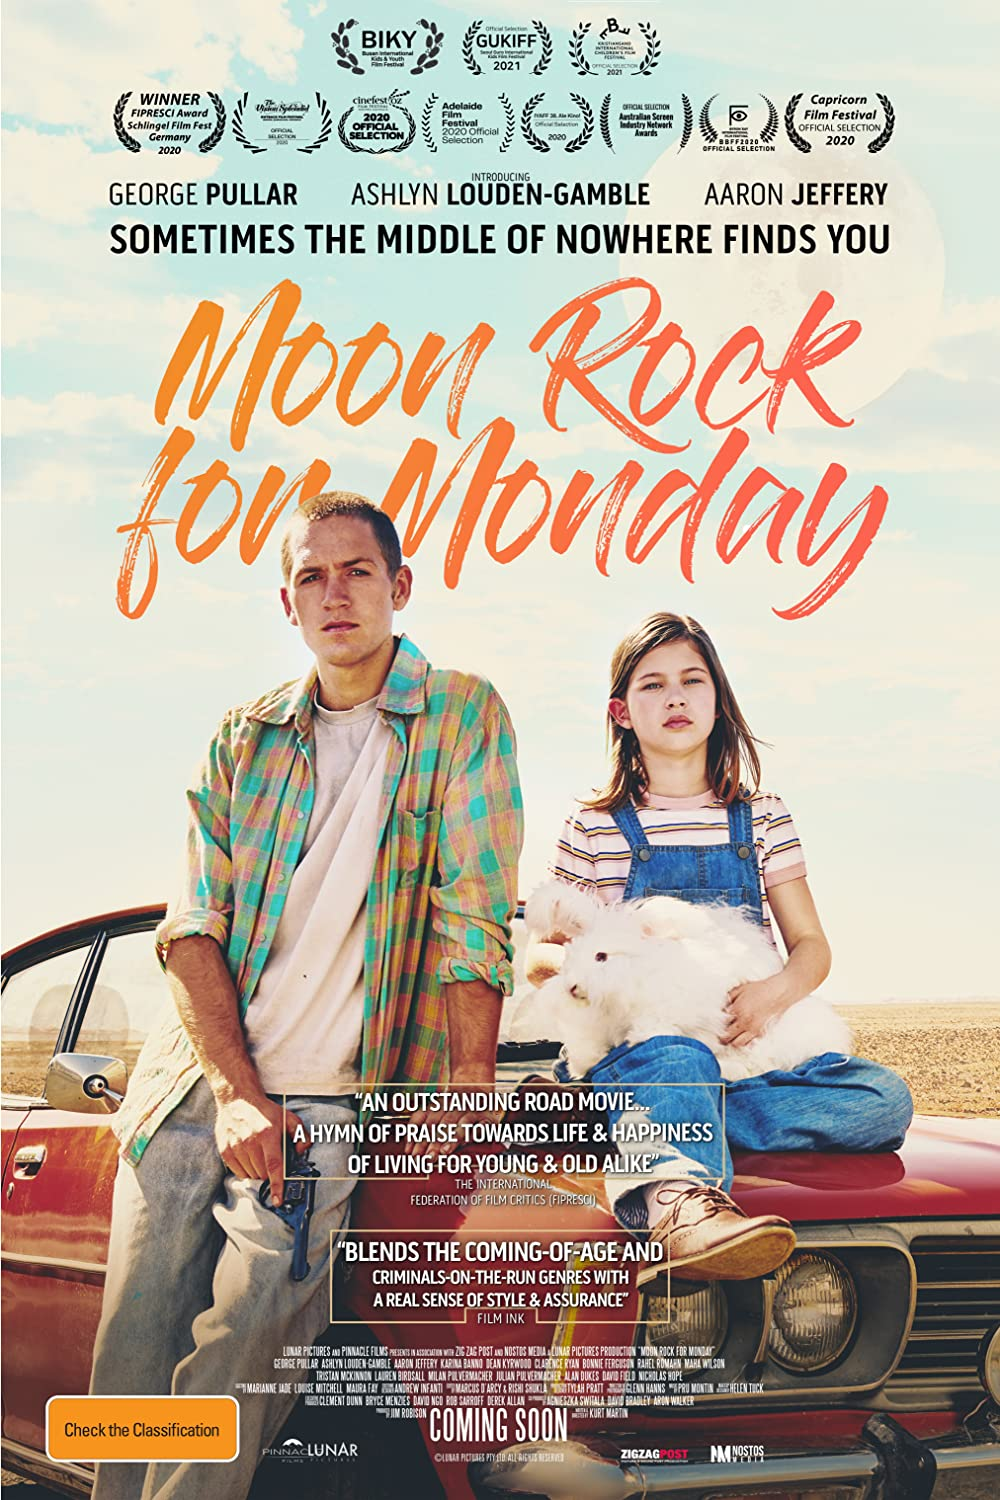 Moon Rock for Monday| Watch Movies Online